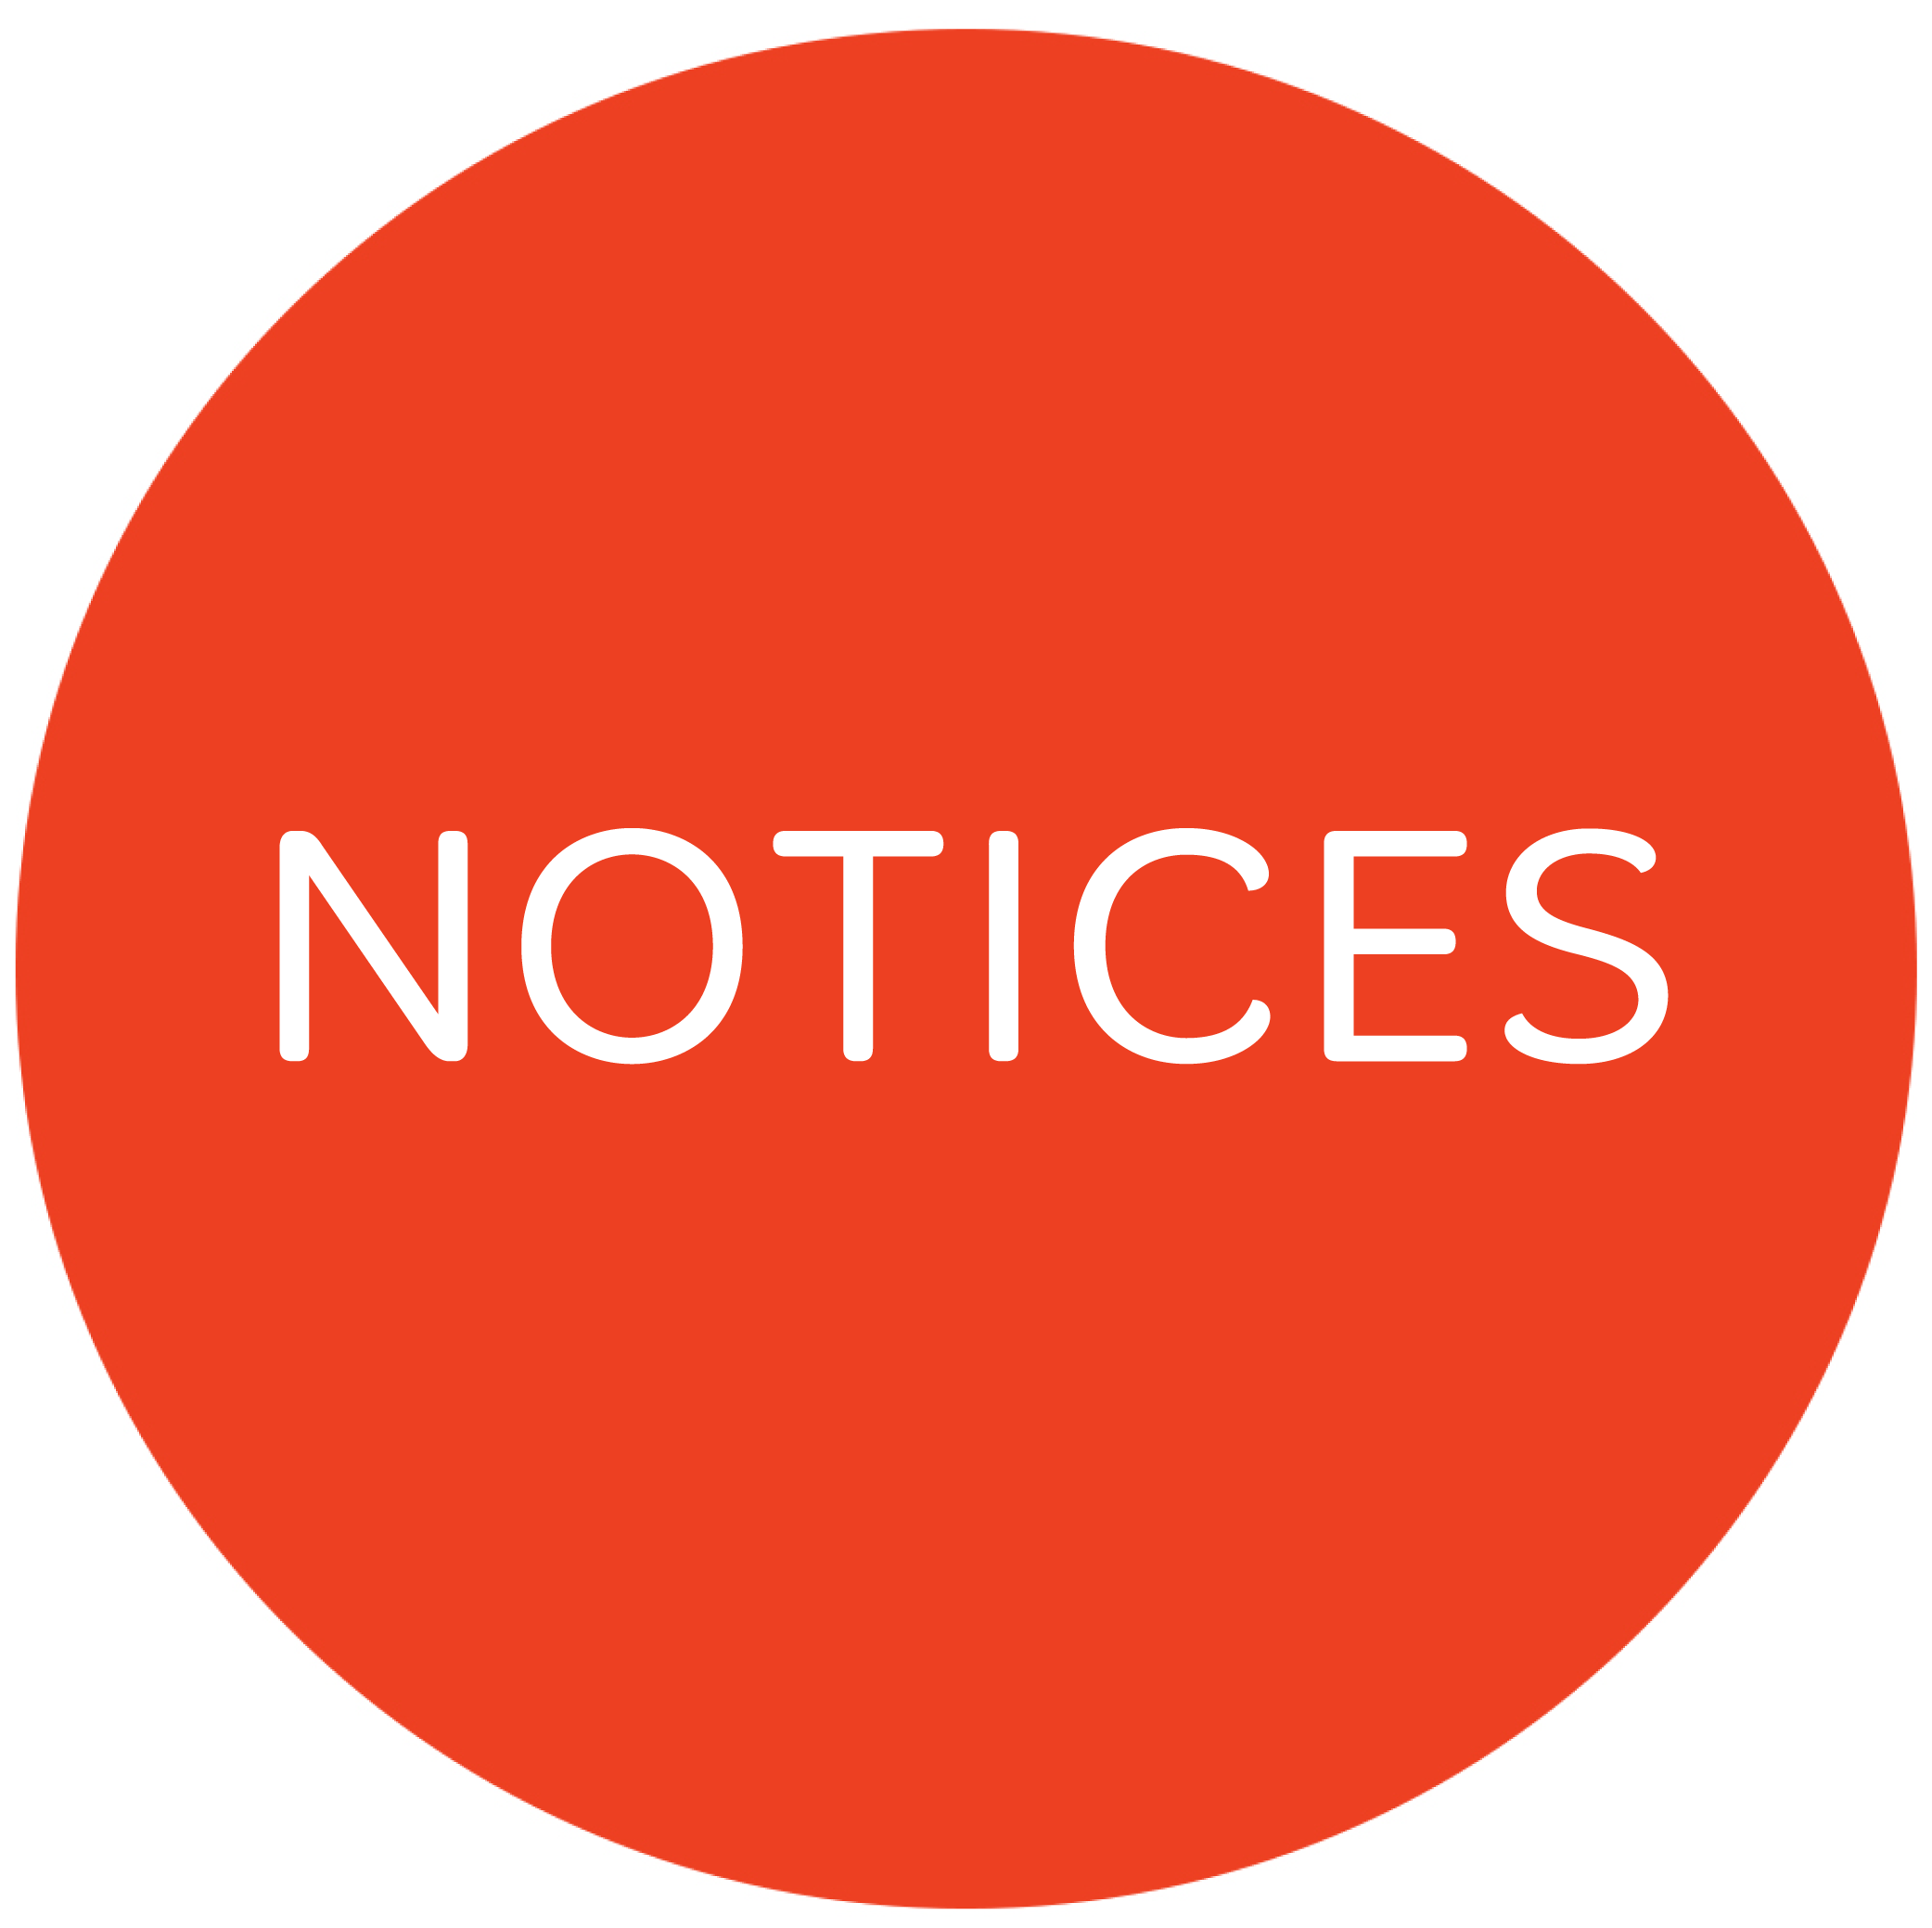 Notices- 29 October 2017